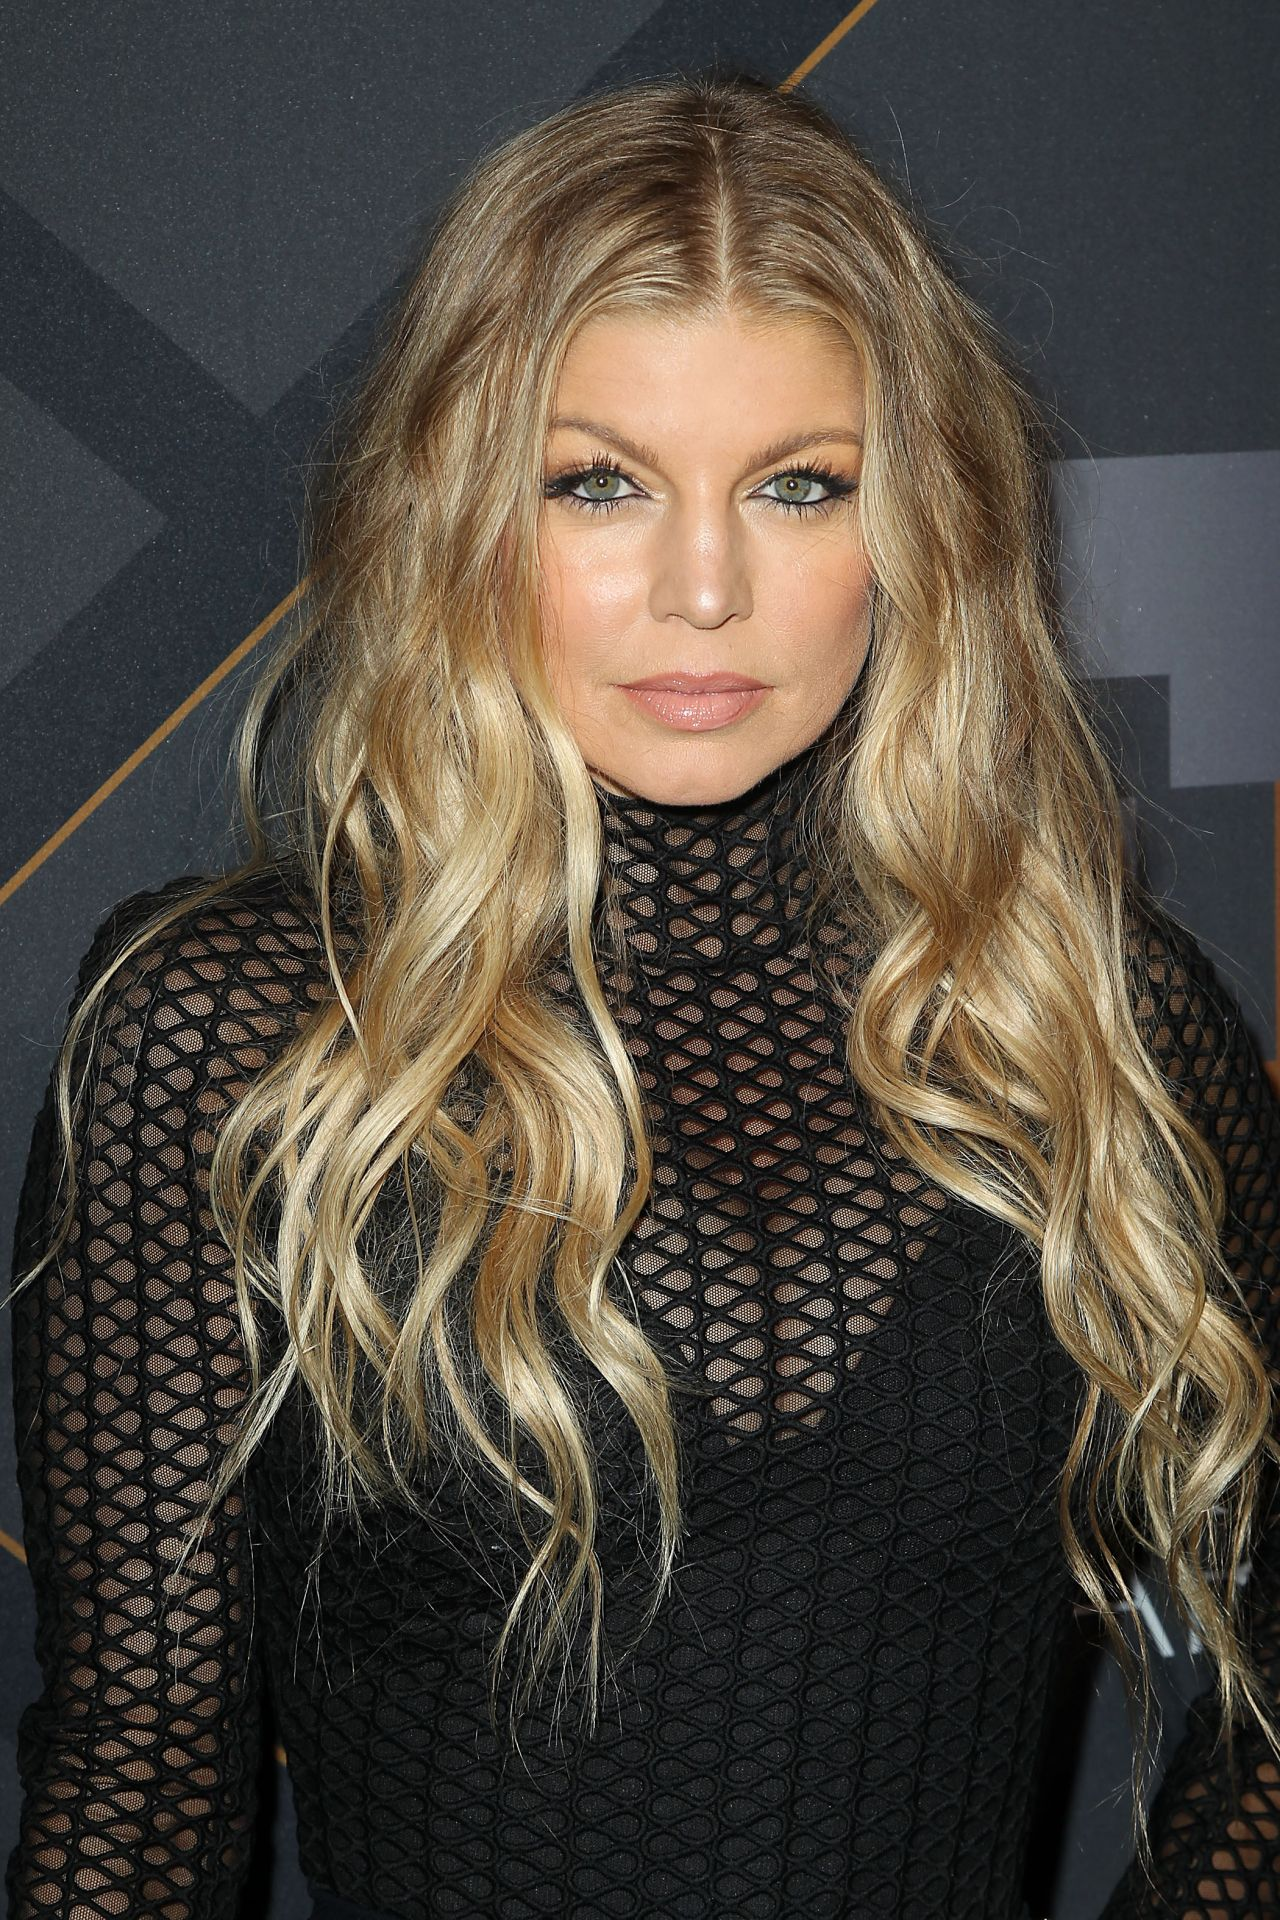 Fergie Latest Photos - CelebMafia Fergie